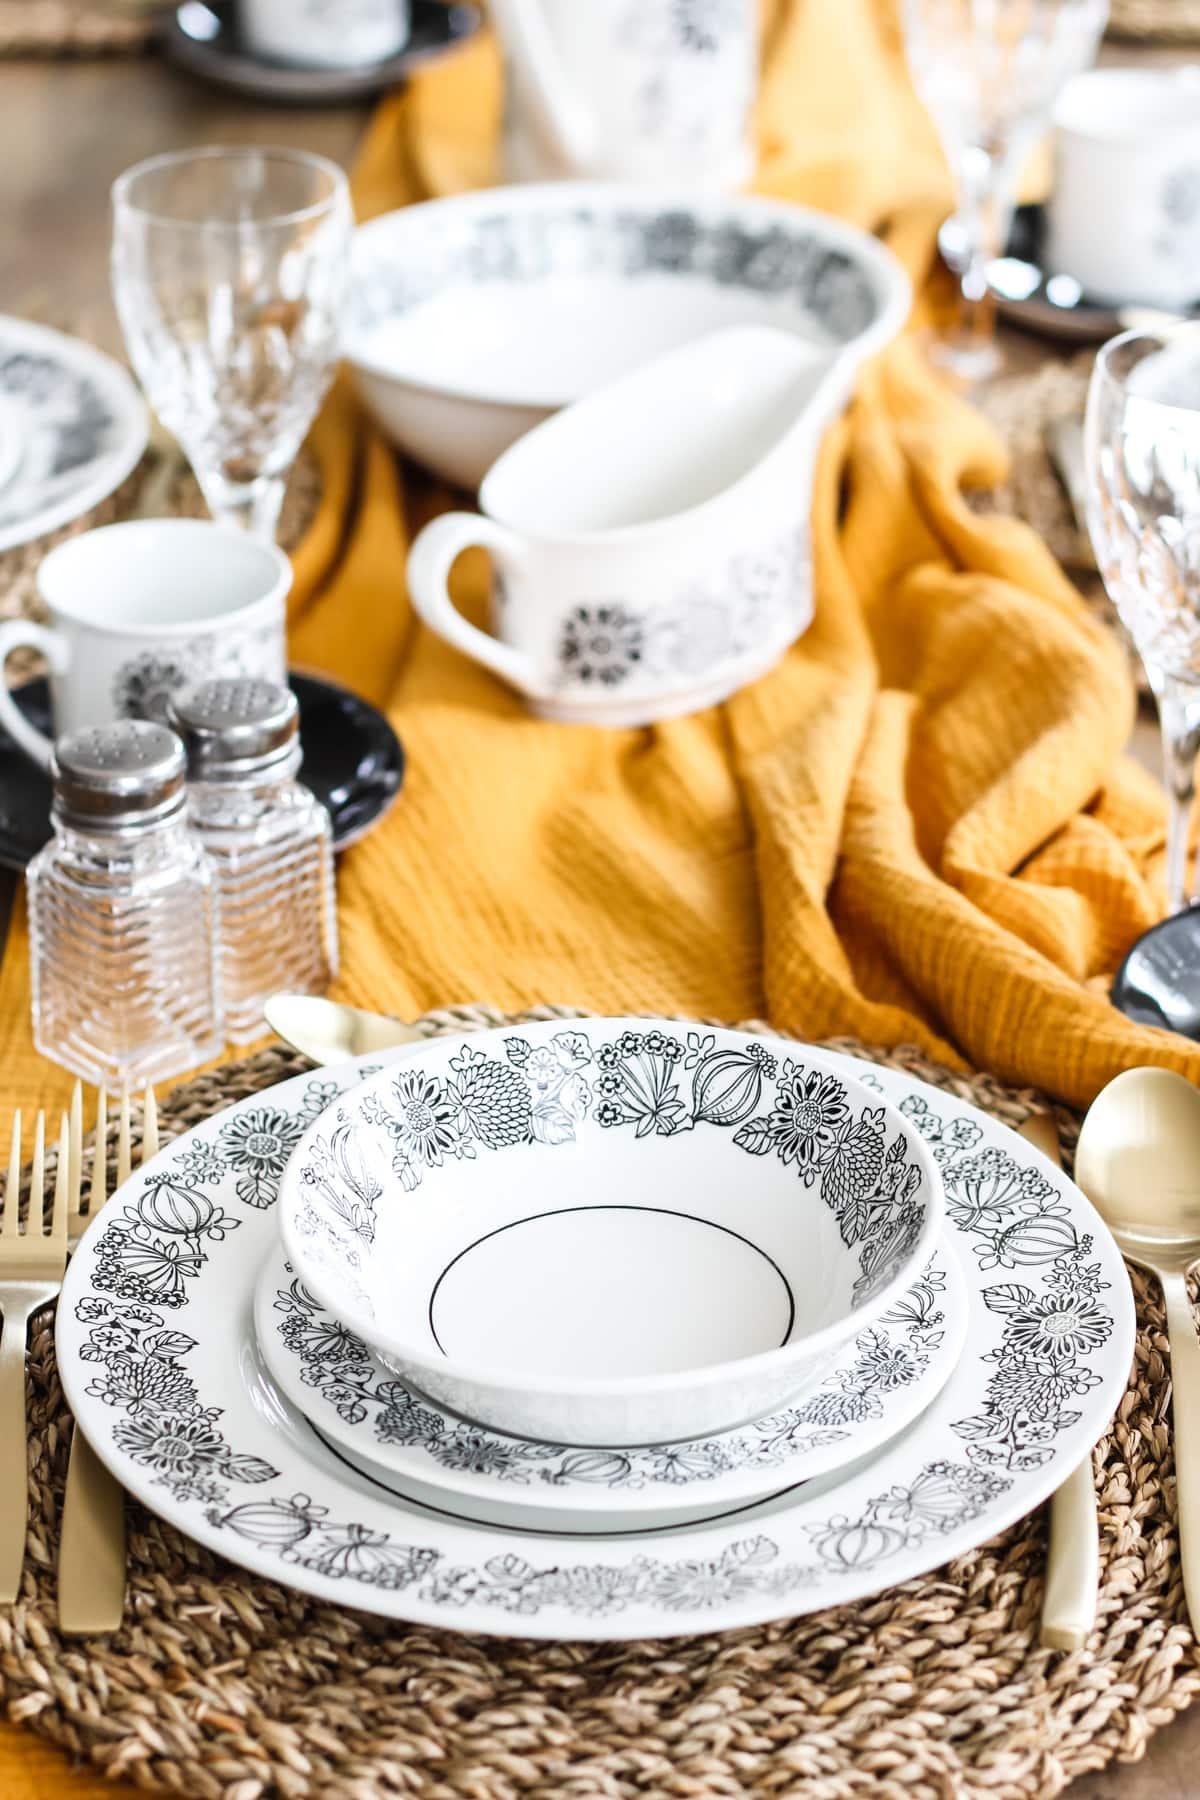 a place setting with a black and white flower patterned plate, small plate and bowl. the dishes are stacked on a woven grass place mat sitting on a gold table runner with more dishes